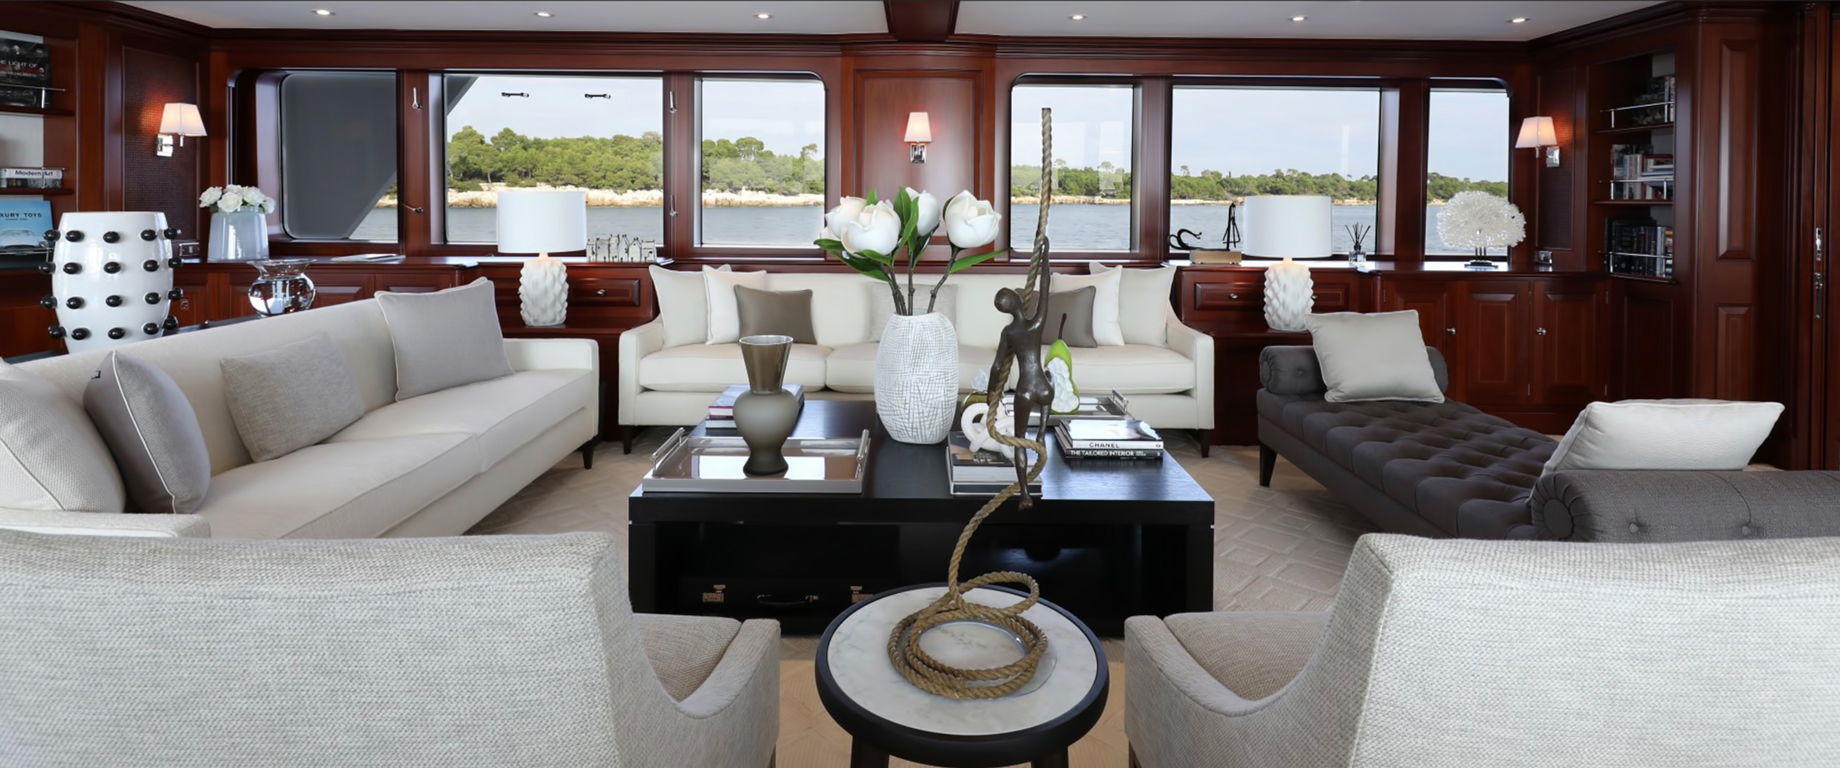 Choosing your Style - The Skys The Limit For Luxury Yacht Decor